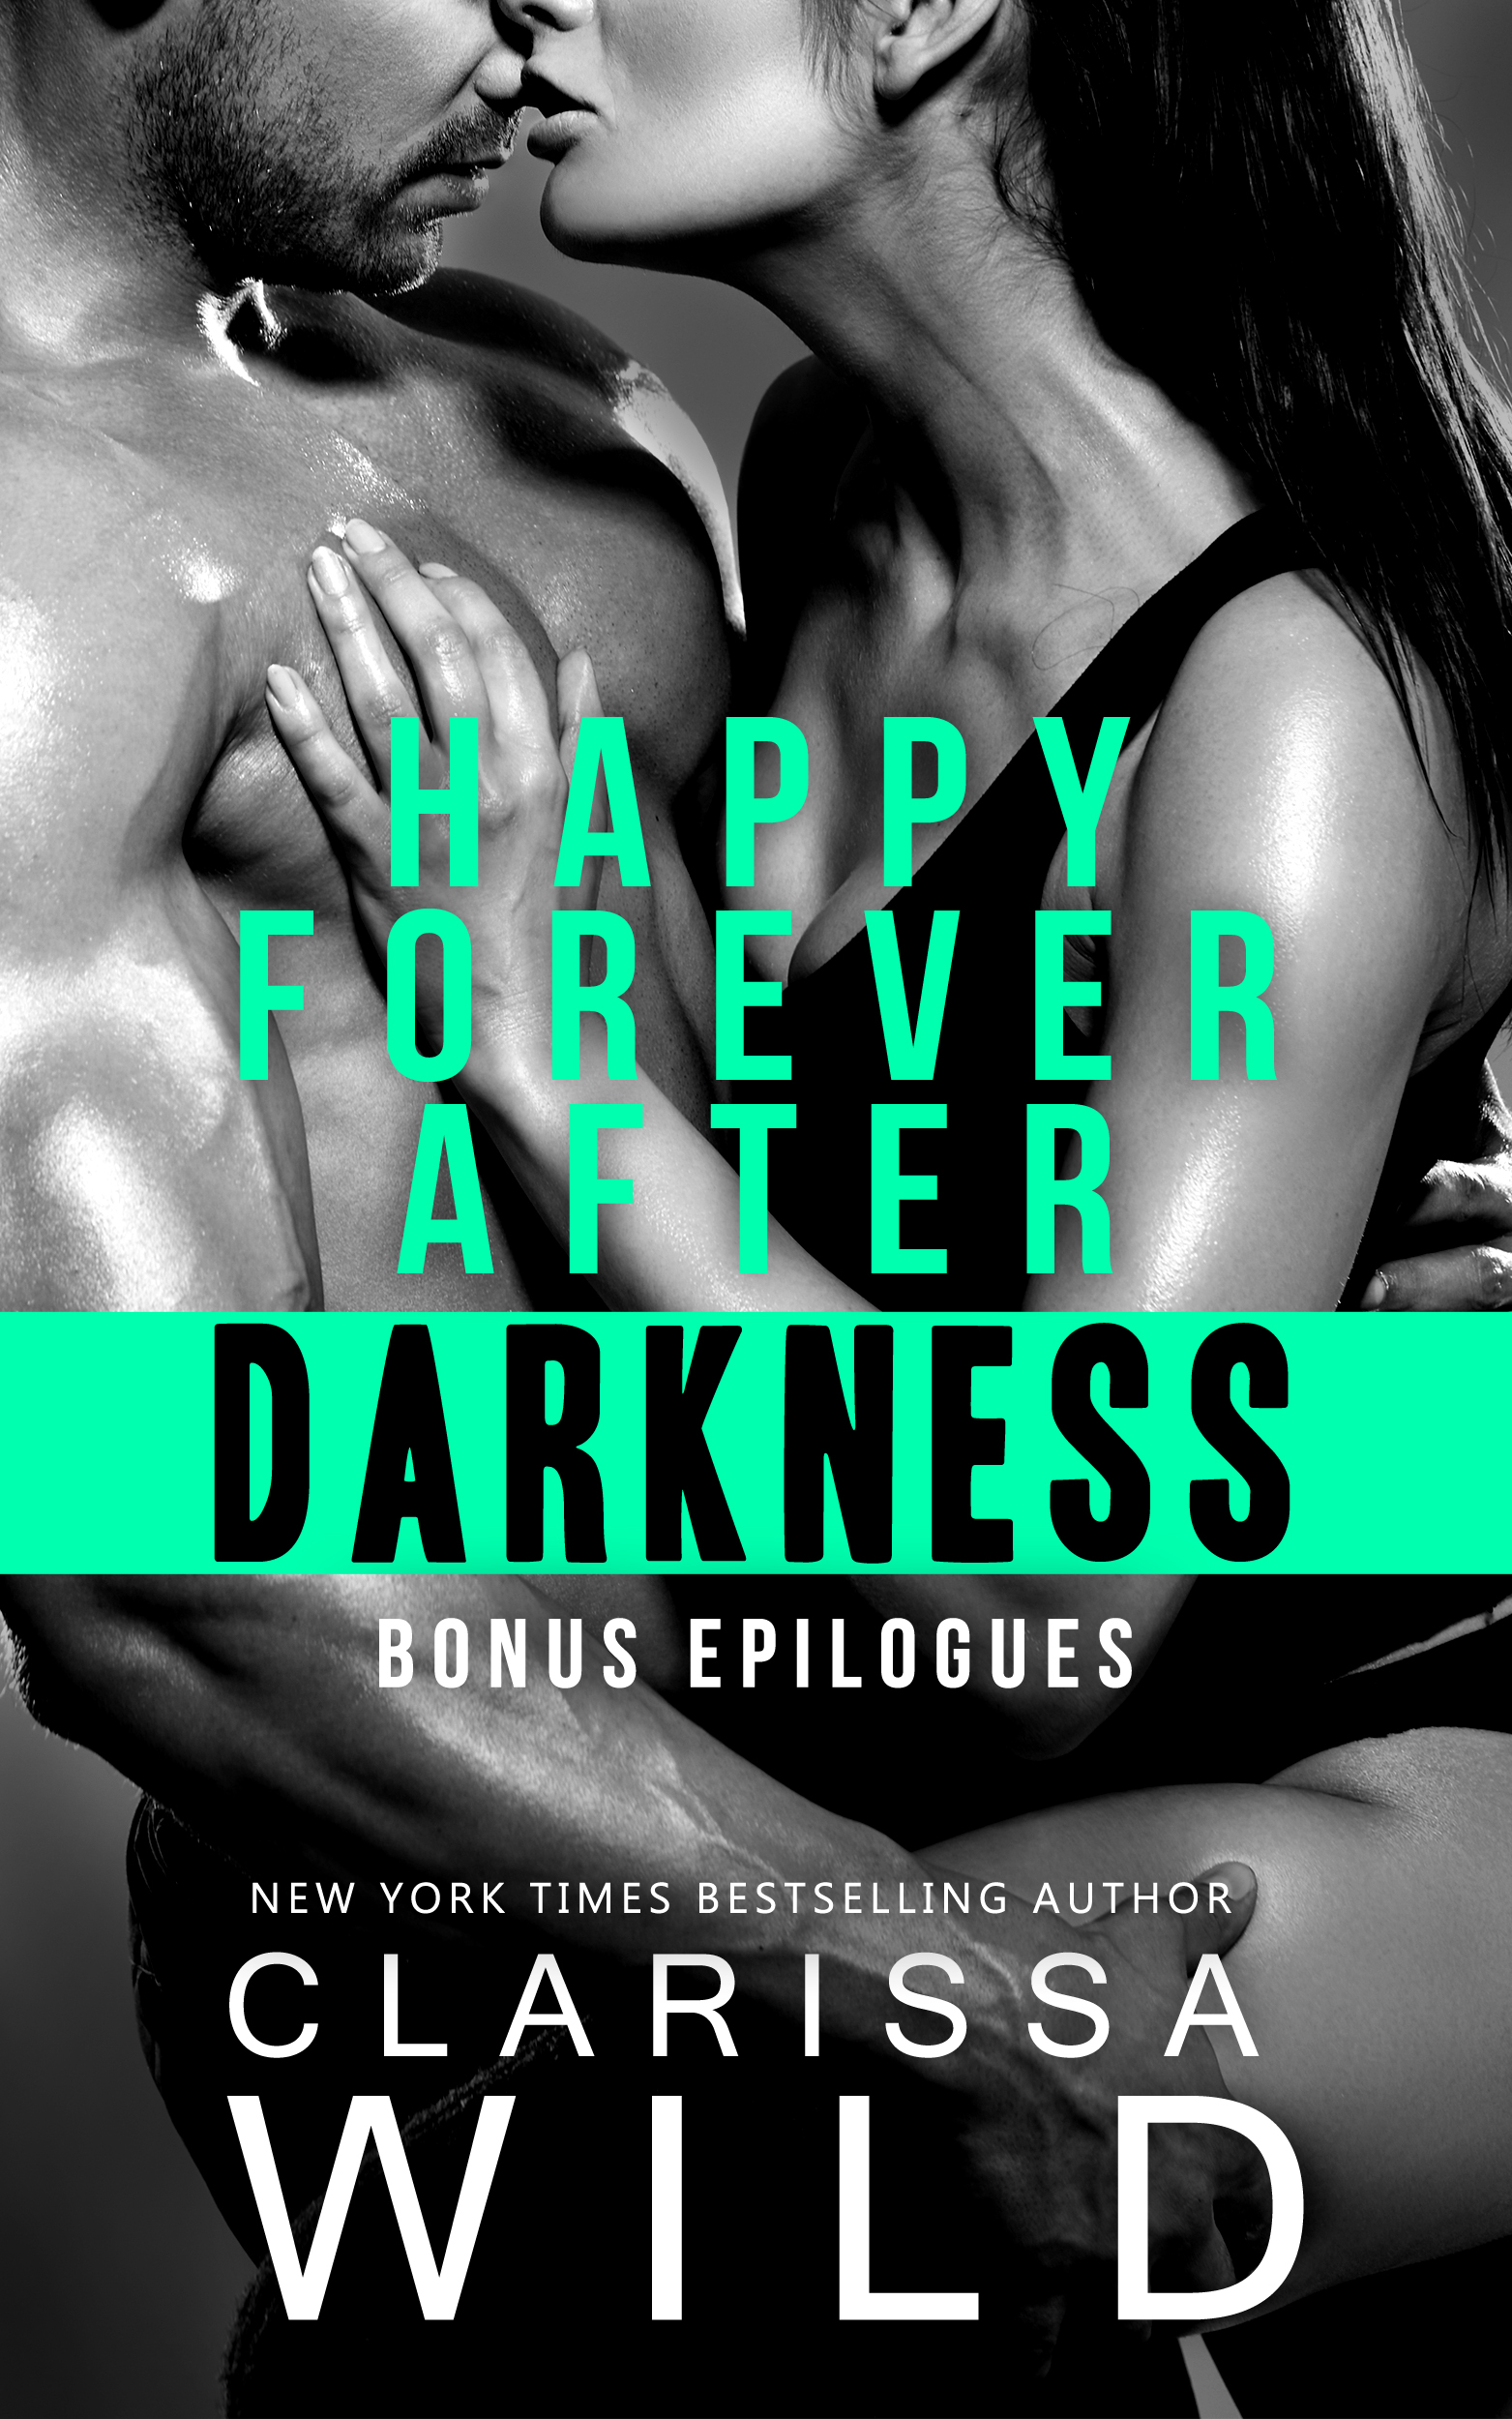 Happy Forever After Darkness